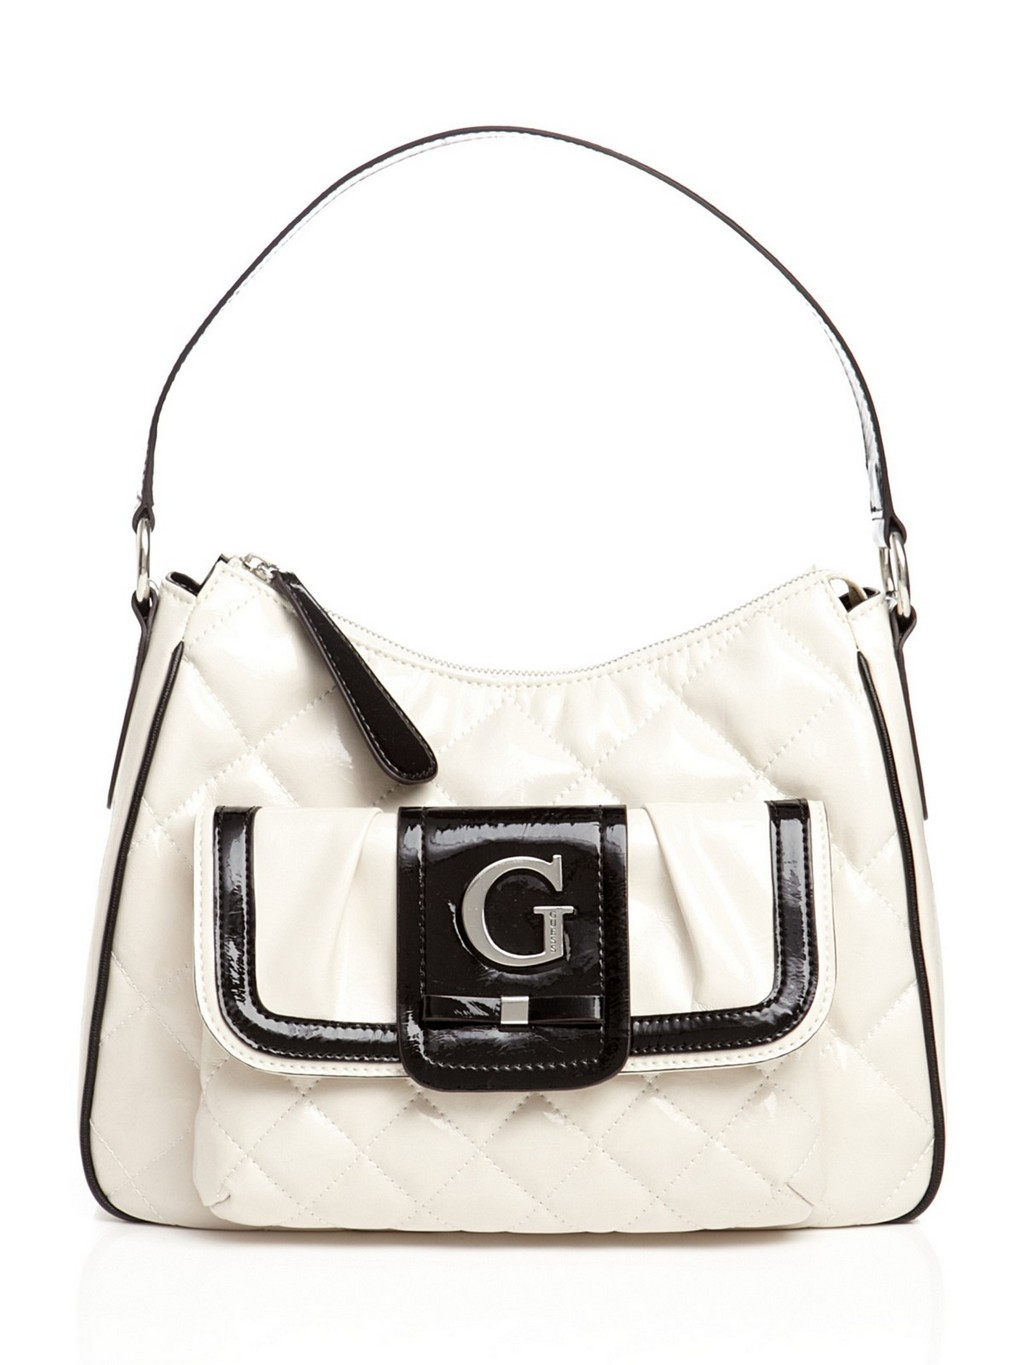 guess purse discounted designer purse betsey johnson purse famous designer purse